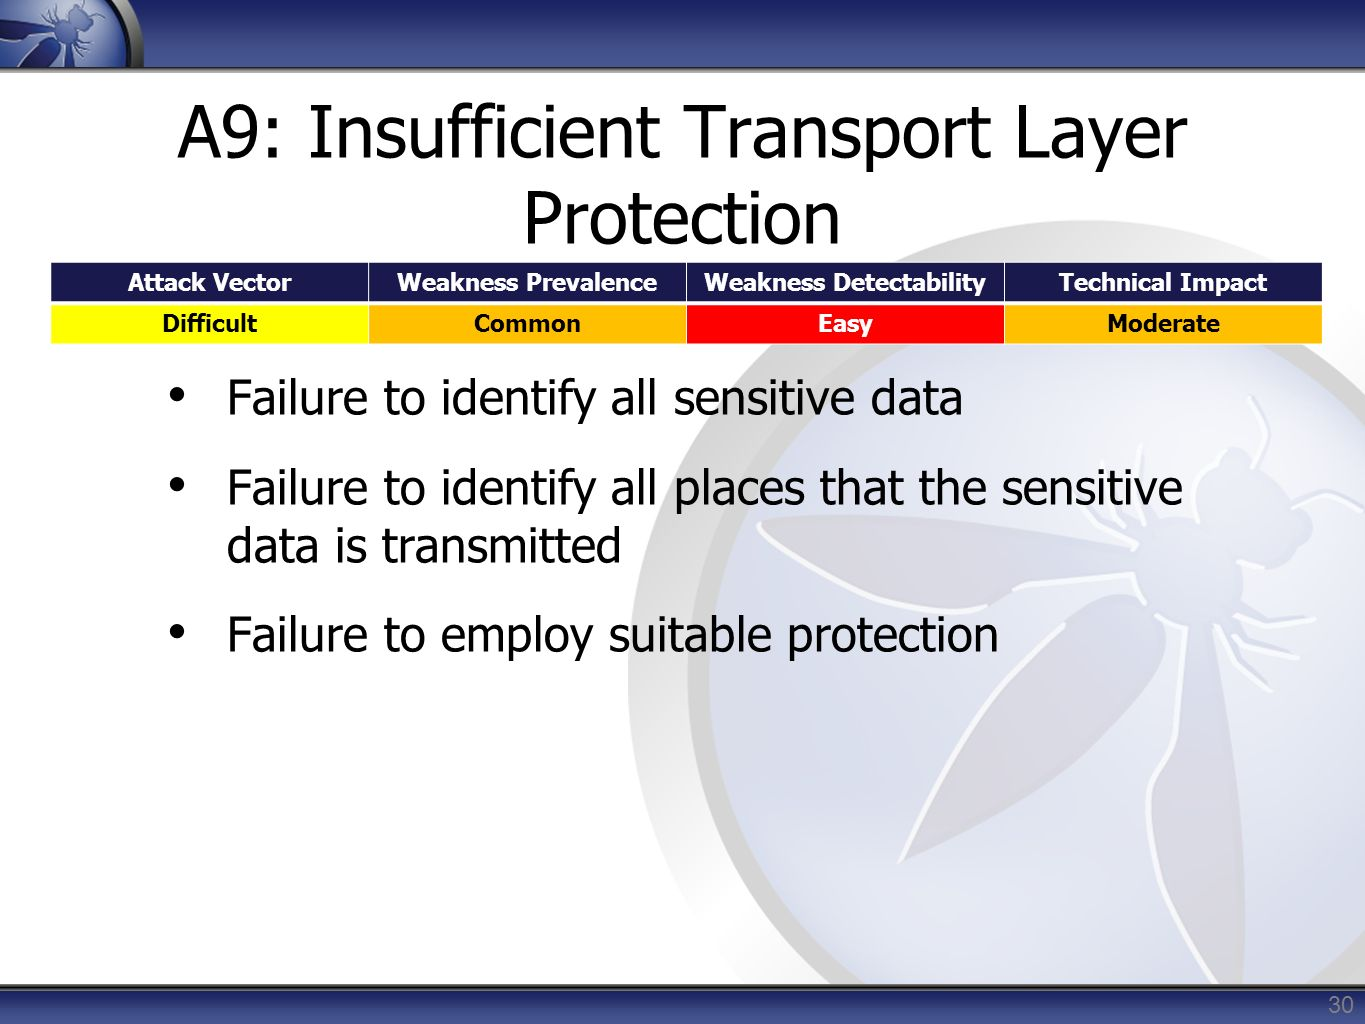 A9: Insufficient Transport Layer Protection